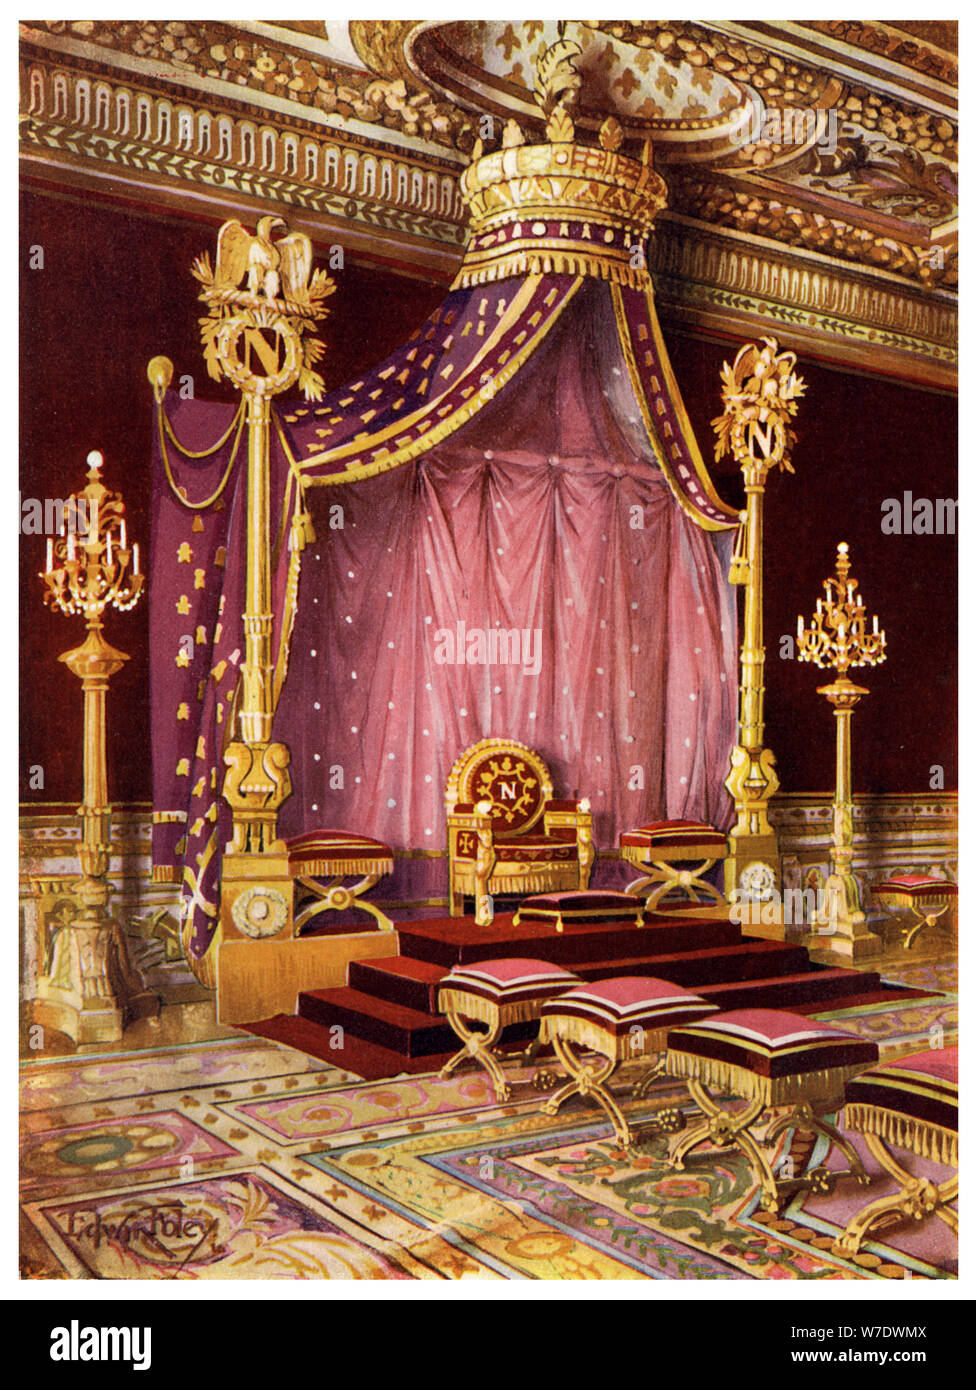 Throne room in the Palace of Fontainebleau, France, 1911